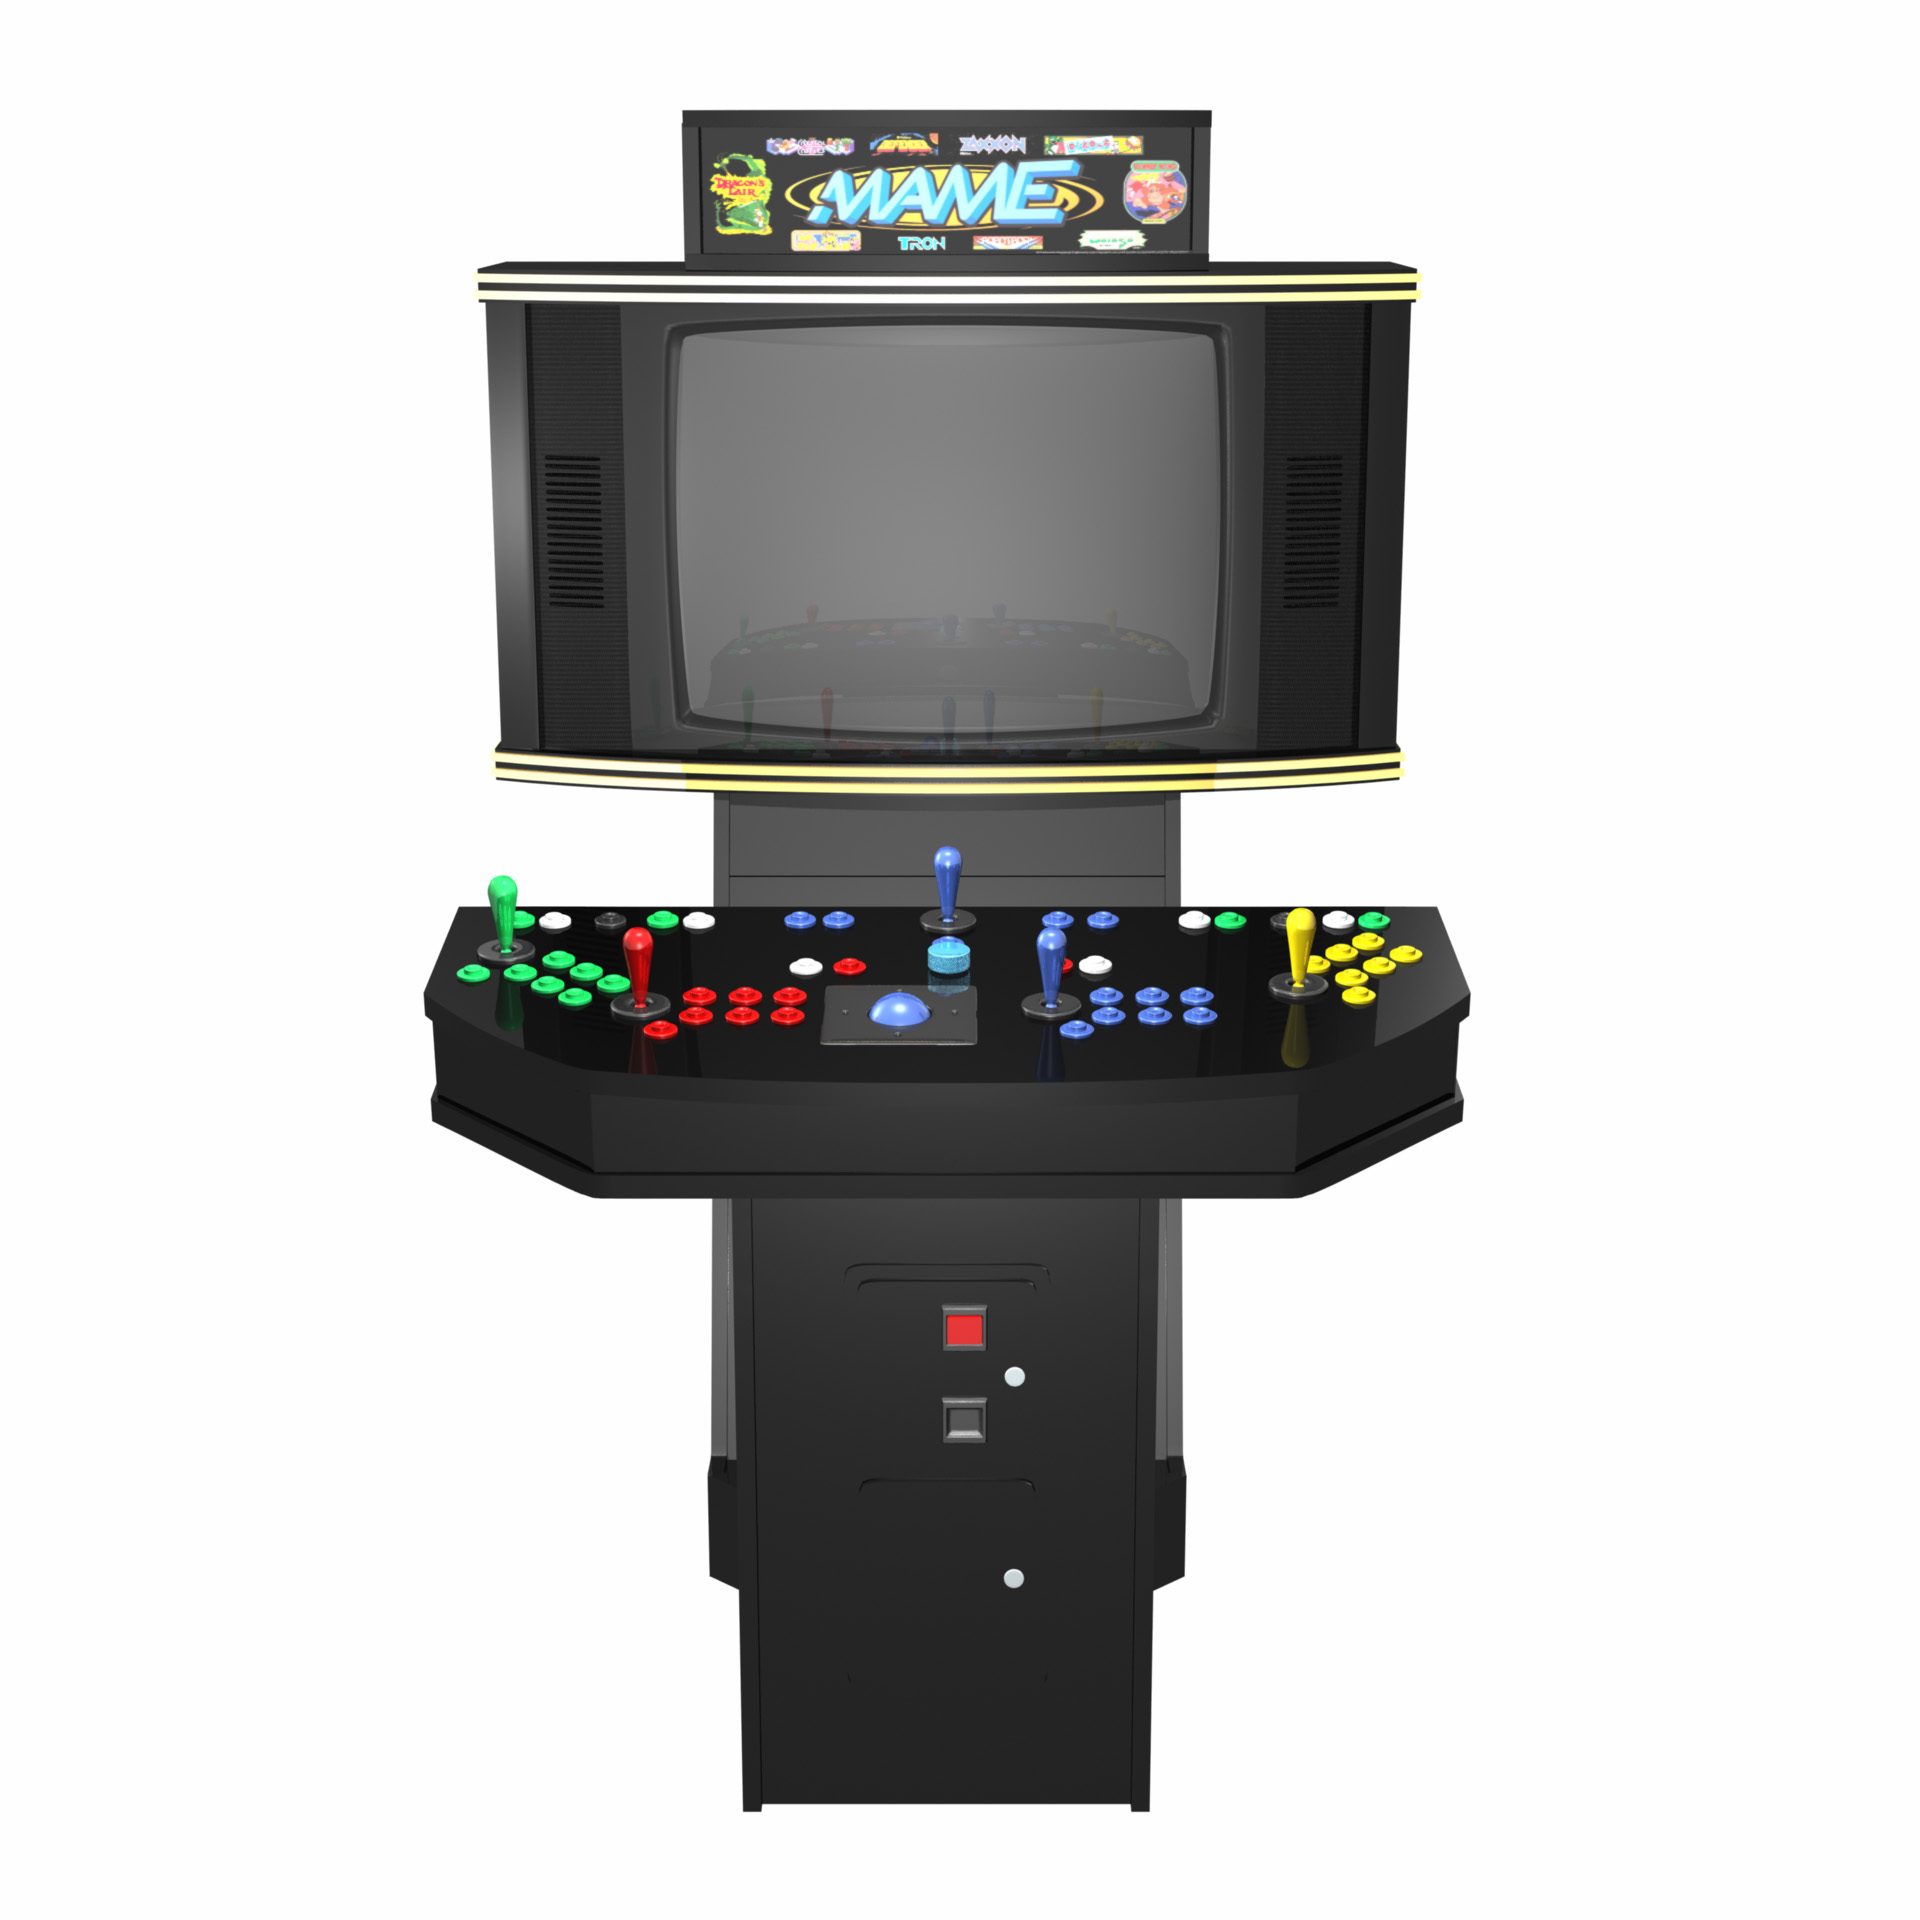 Congratulations on purchasing a MAME Cabinet